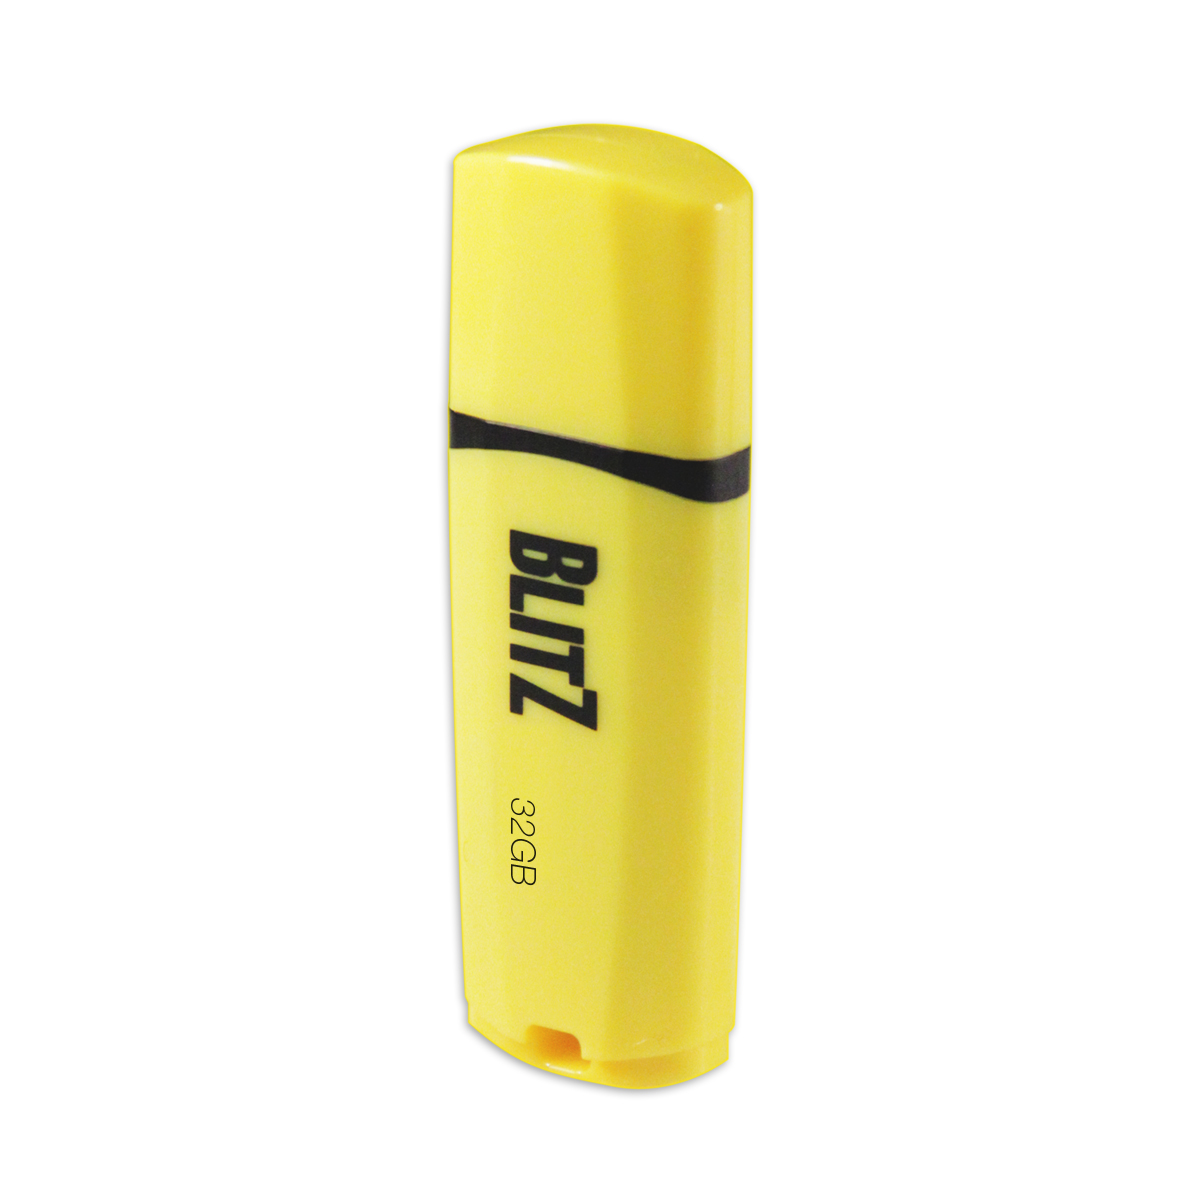 Flash disk Patriot Blitz 32GB USB 3.0 Yellow